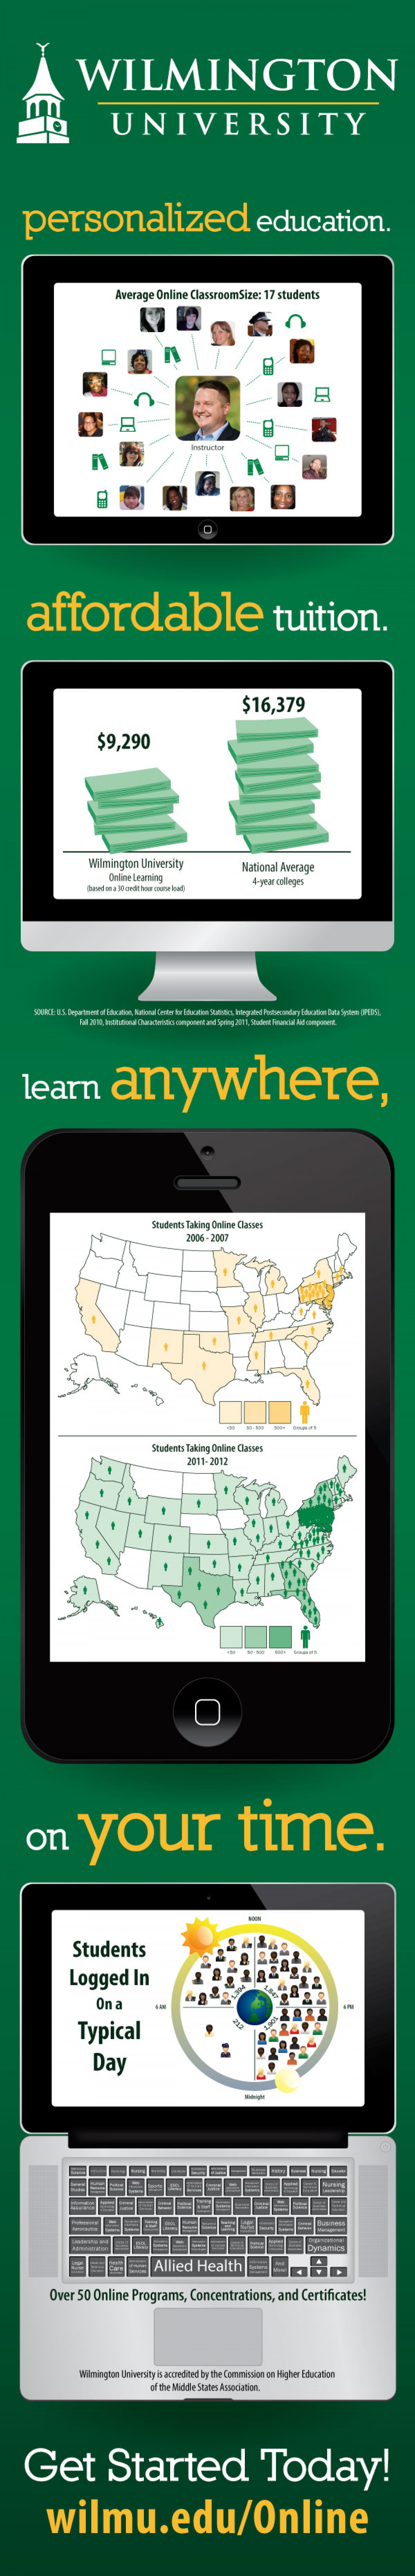 Wilmington University Online Degree Programs - Earn your degree in a way that fits your life Infographic